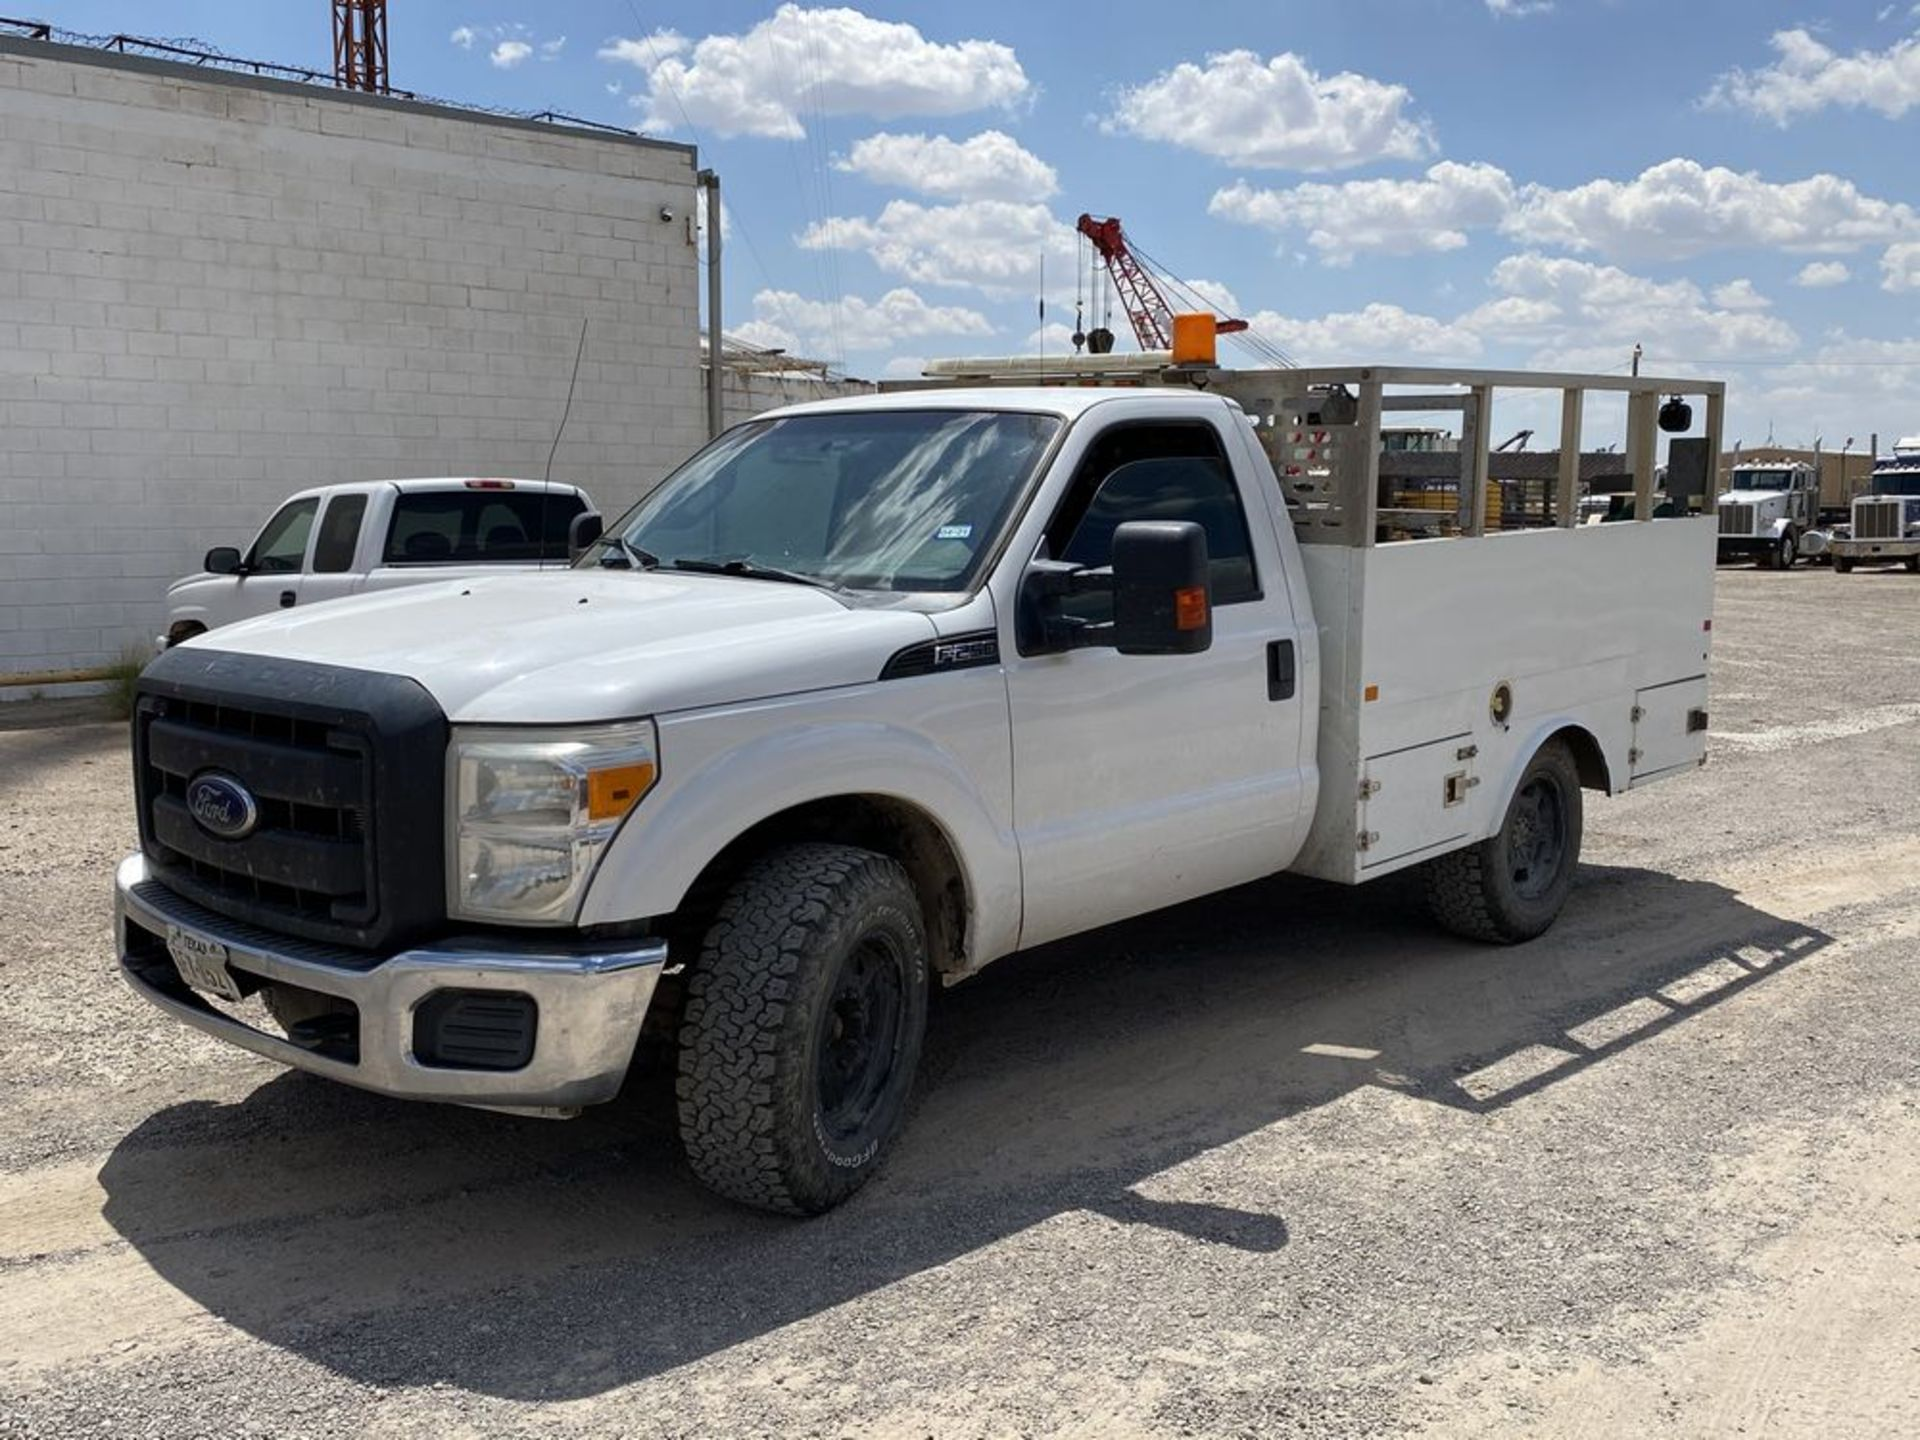 2012 Ford F-250 Super Duty - Image 14 of 20